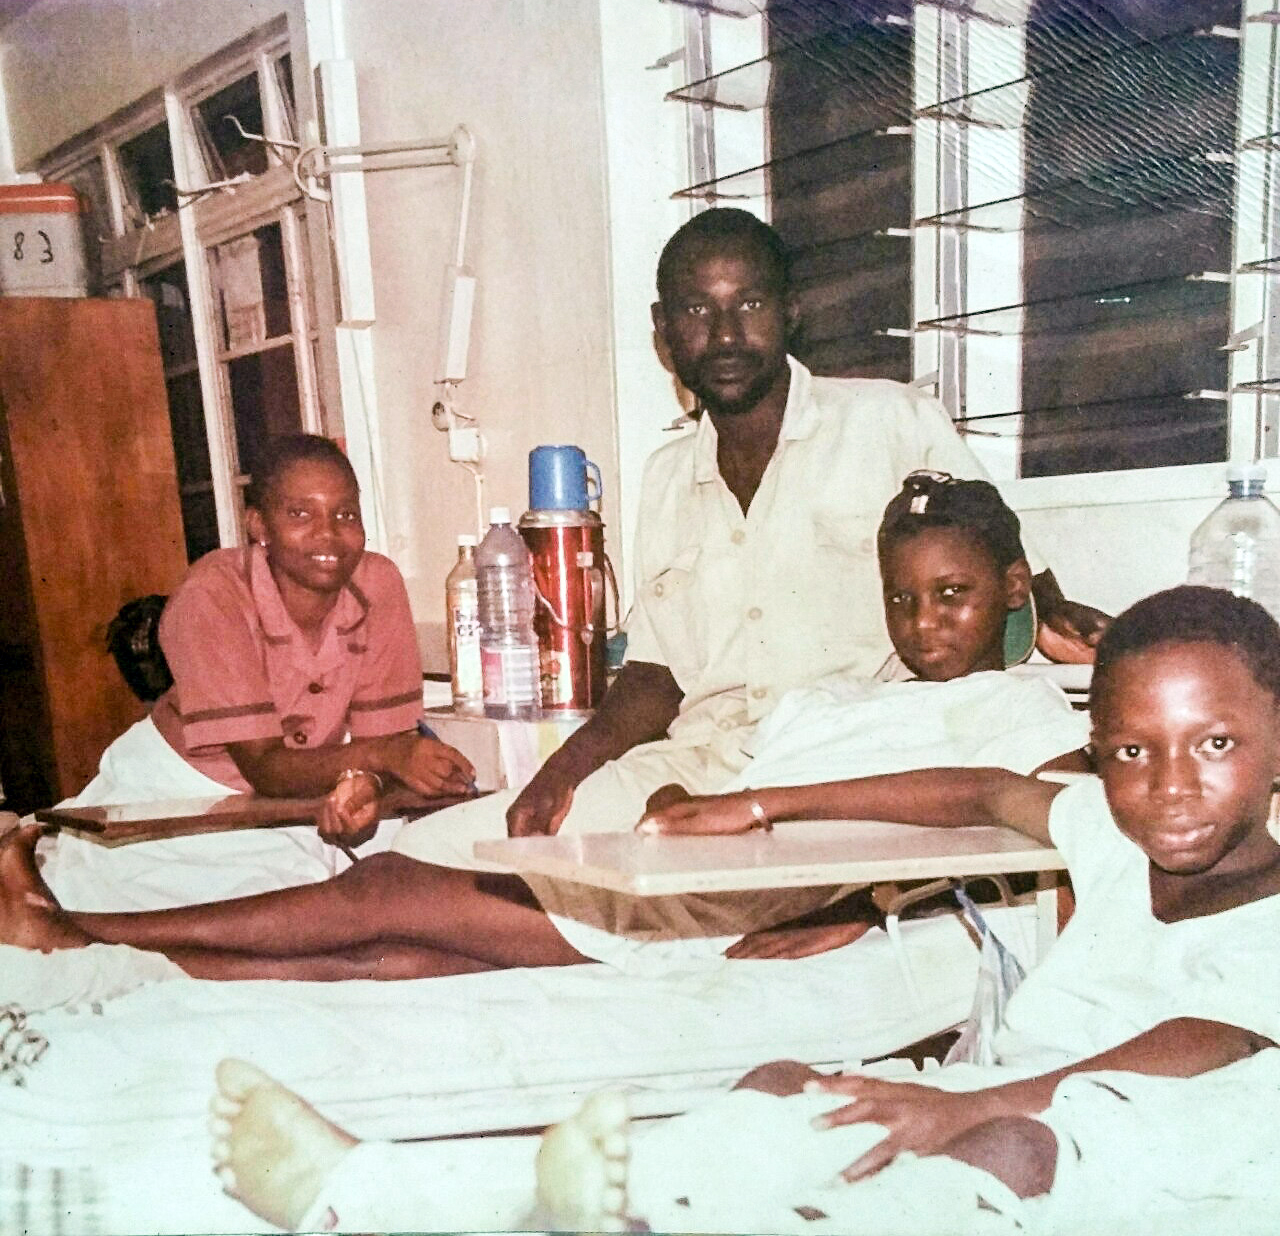 Ismail (second from left) at age 13 in a Gambia hospital recovering from a fractured femur, an injury that was to follow him into adulthood. At the far right is his nurse, and the hospital custodian. At the right is his bed neighbor.